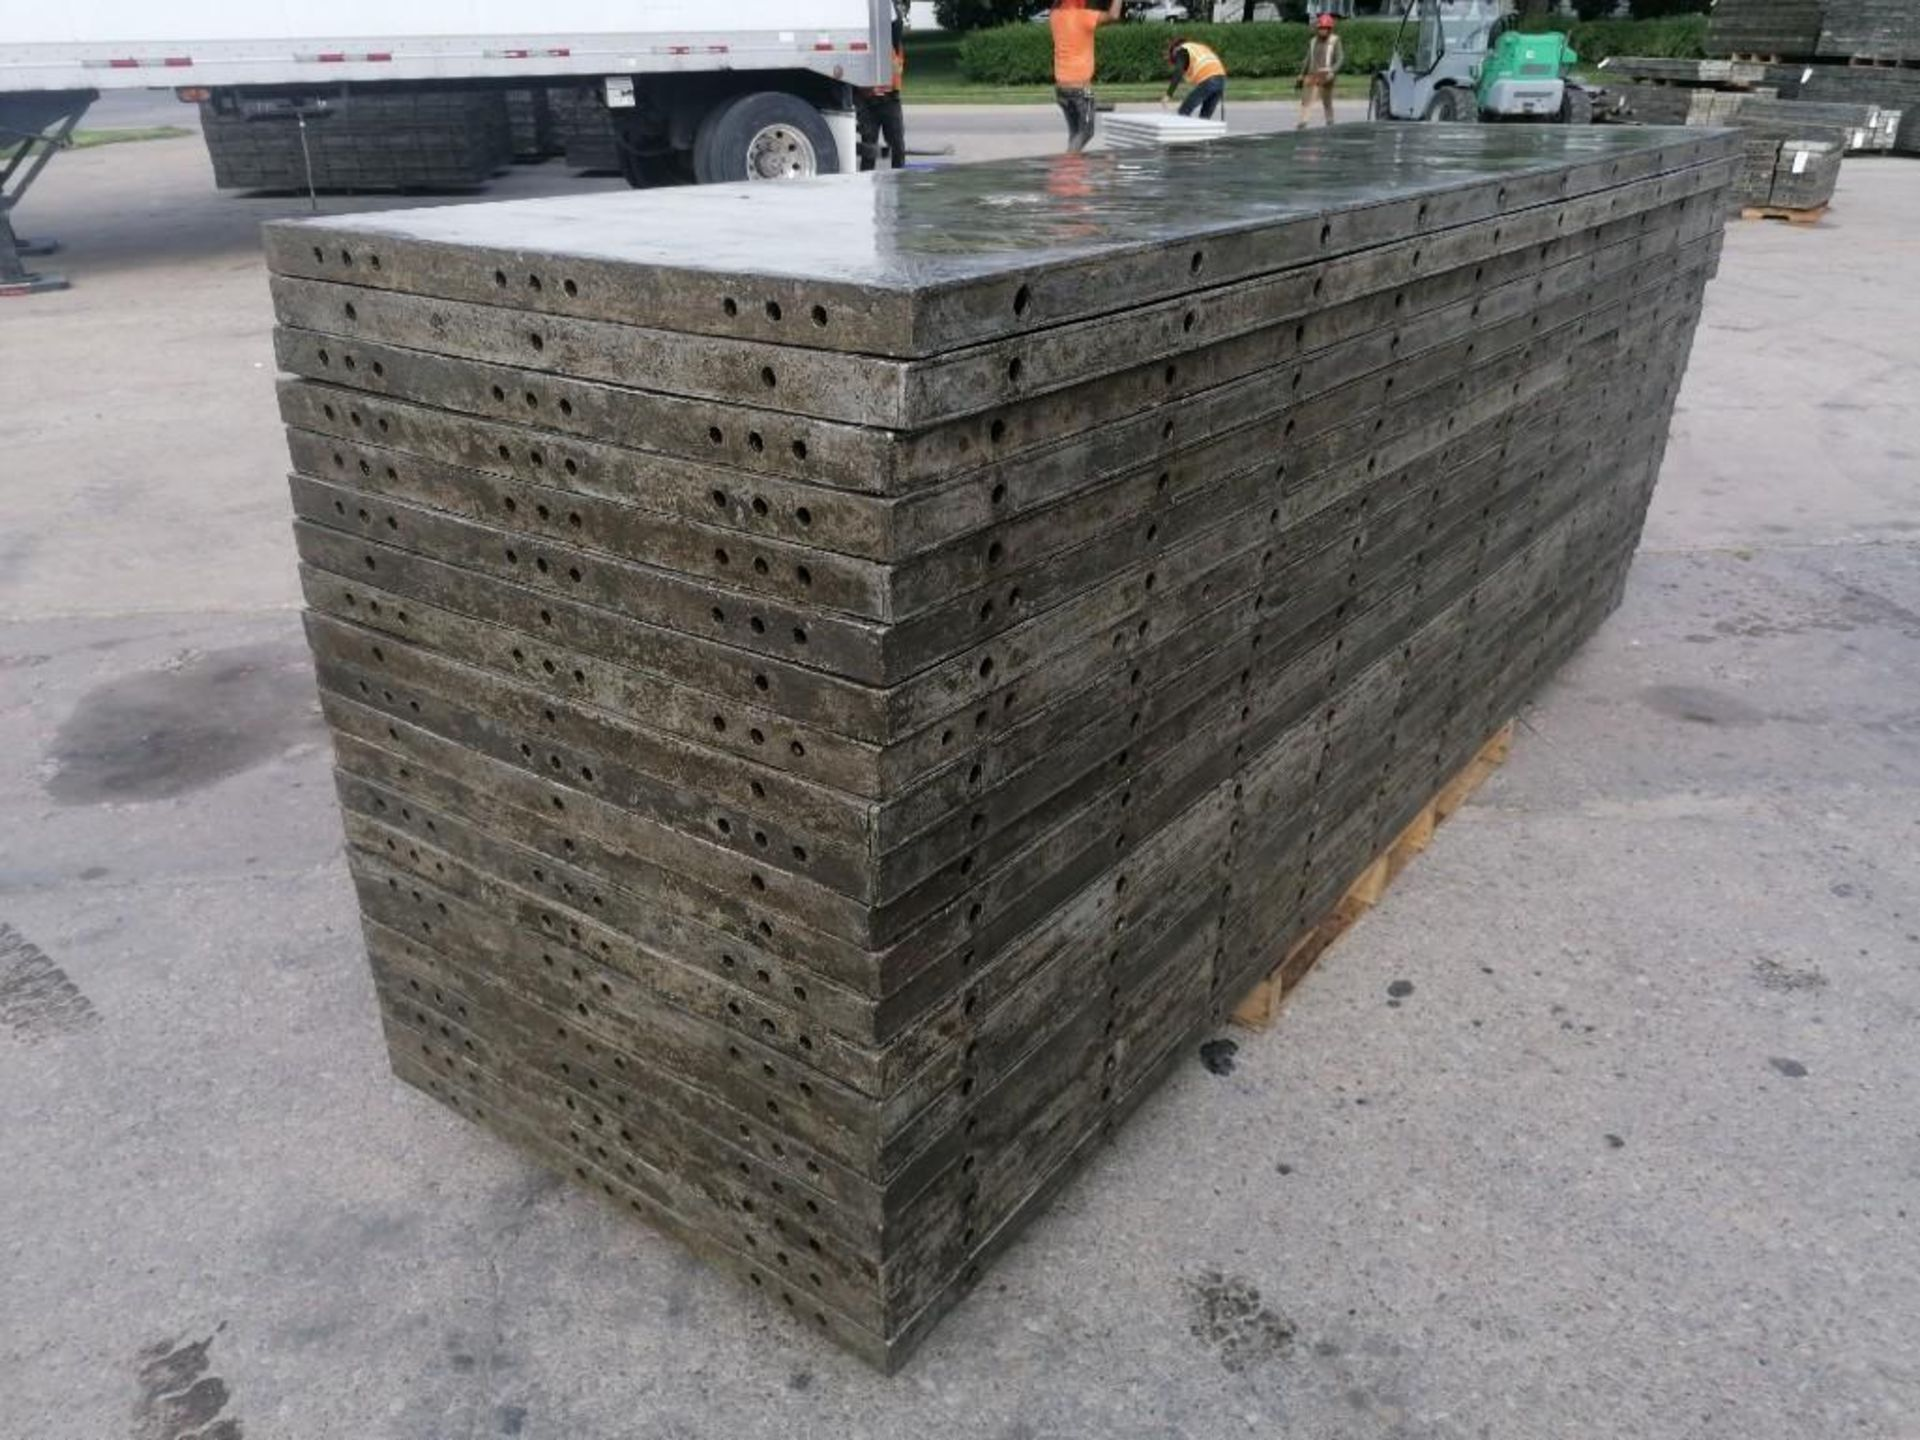 Lot 127 - (20) 3' x 10' Wall-Ties Aluminum Concrete Forms, Smooth 6-12 Hole Pattern. Located at 301 E Henry